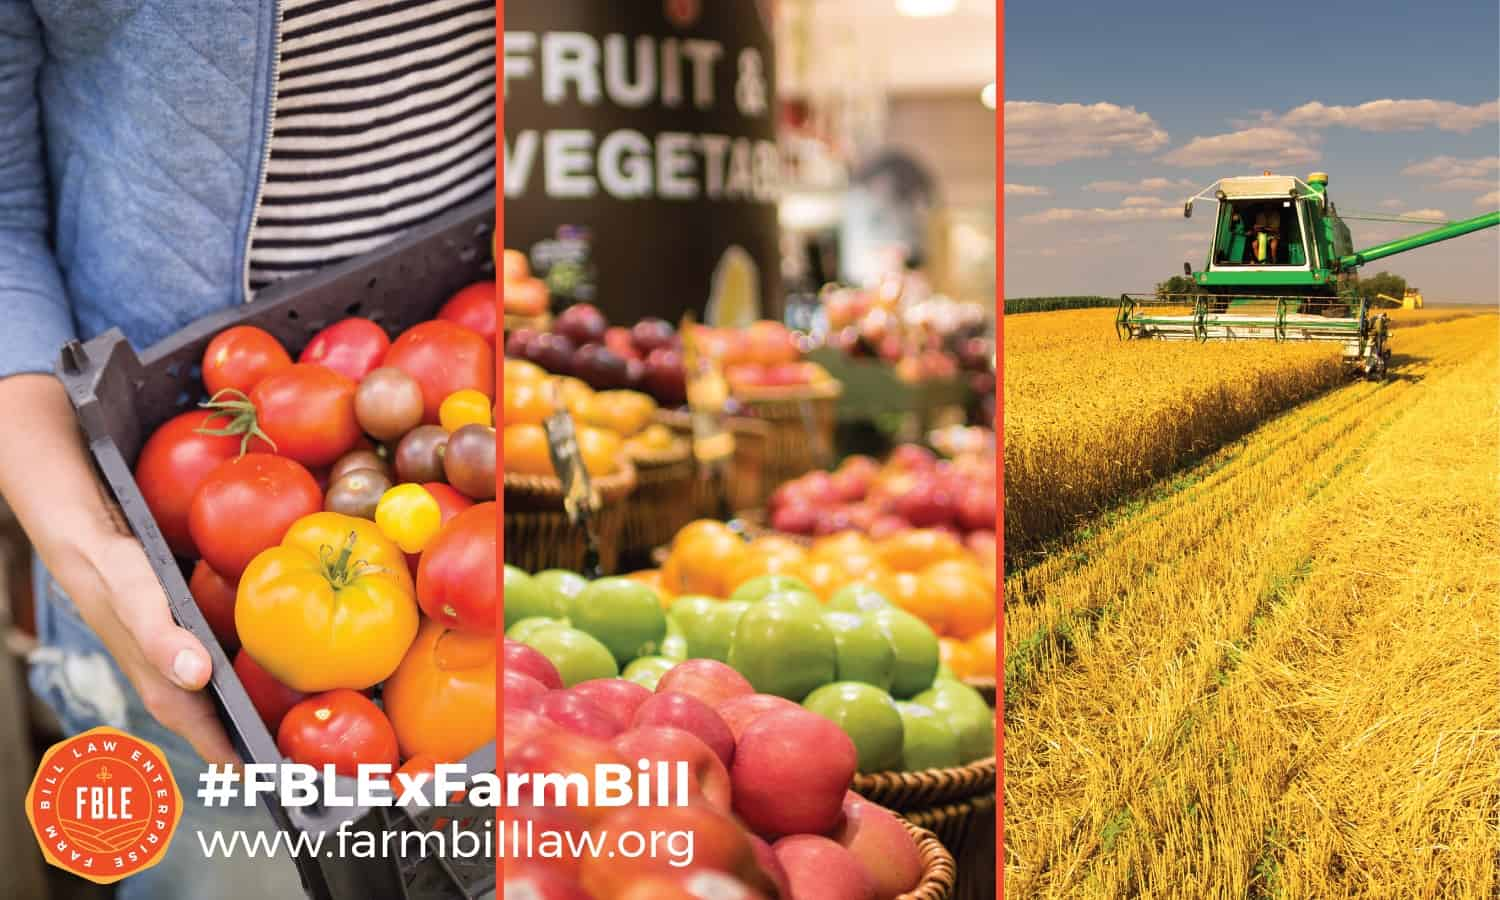 Farm Bill Law Enterprise recommends Congress strengthen and redistribute farm bill benefits.